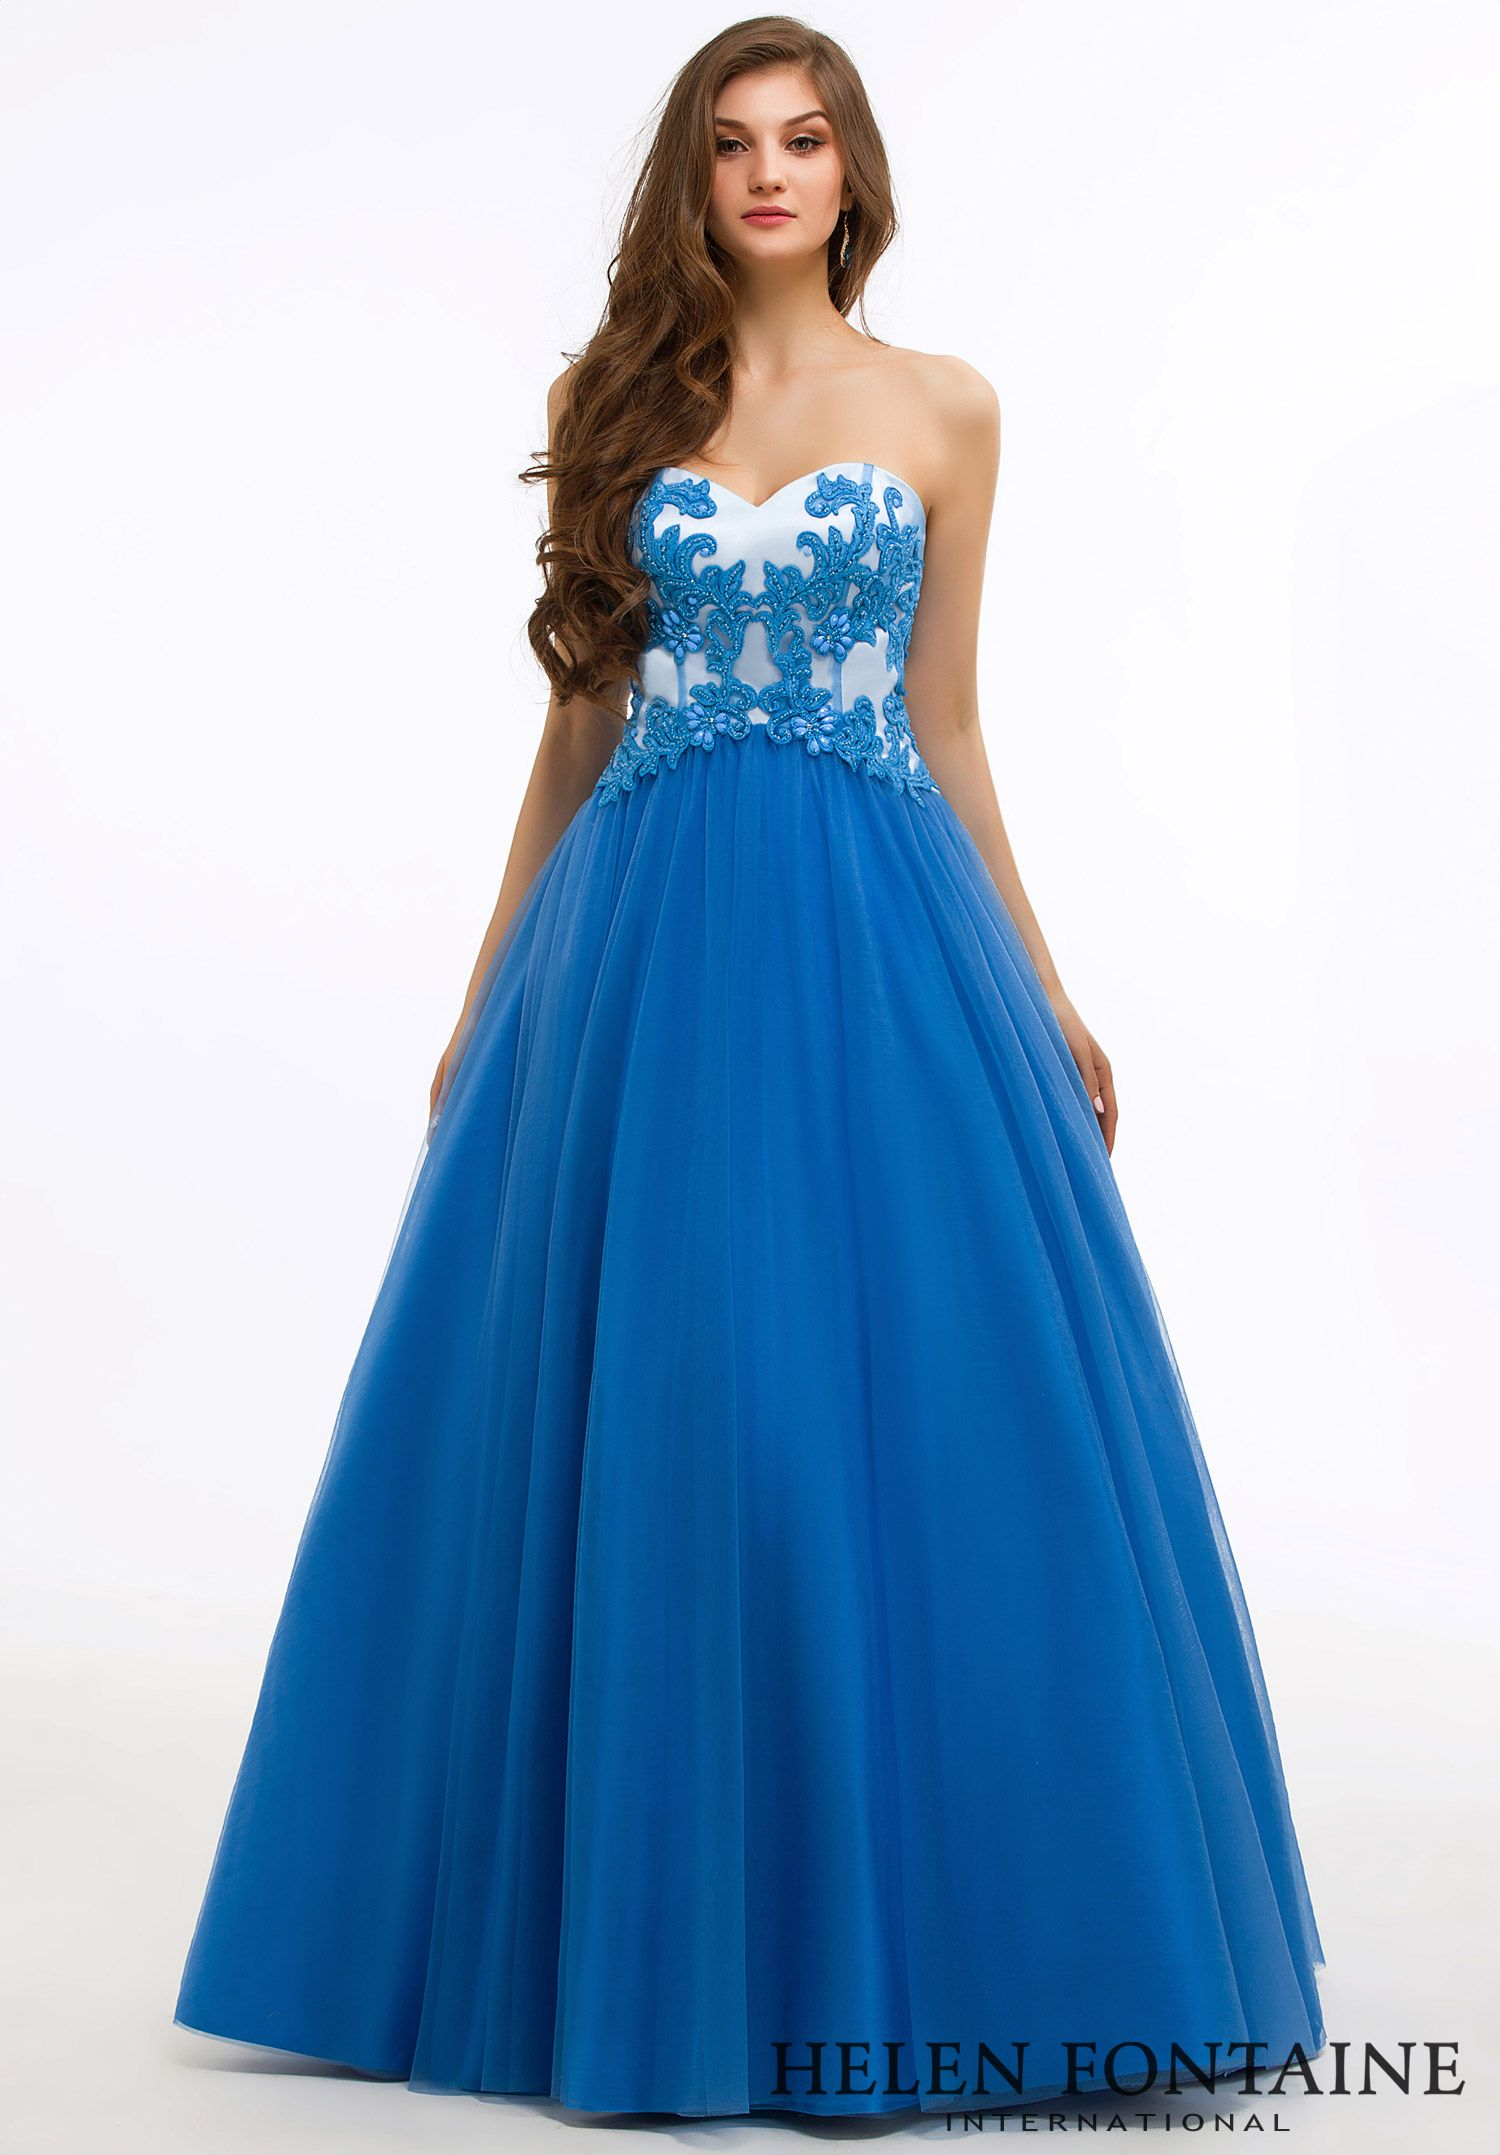 Satin floor length sweetheart open back prom dressstyle hfp